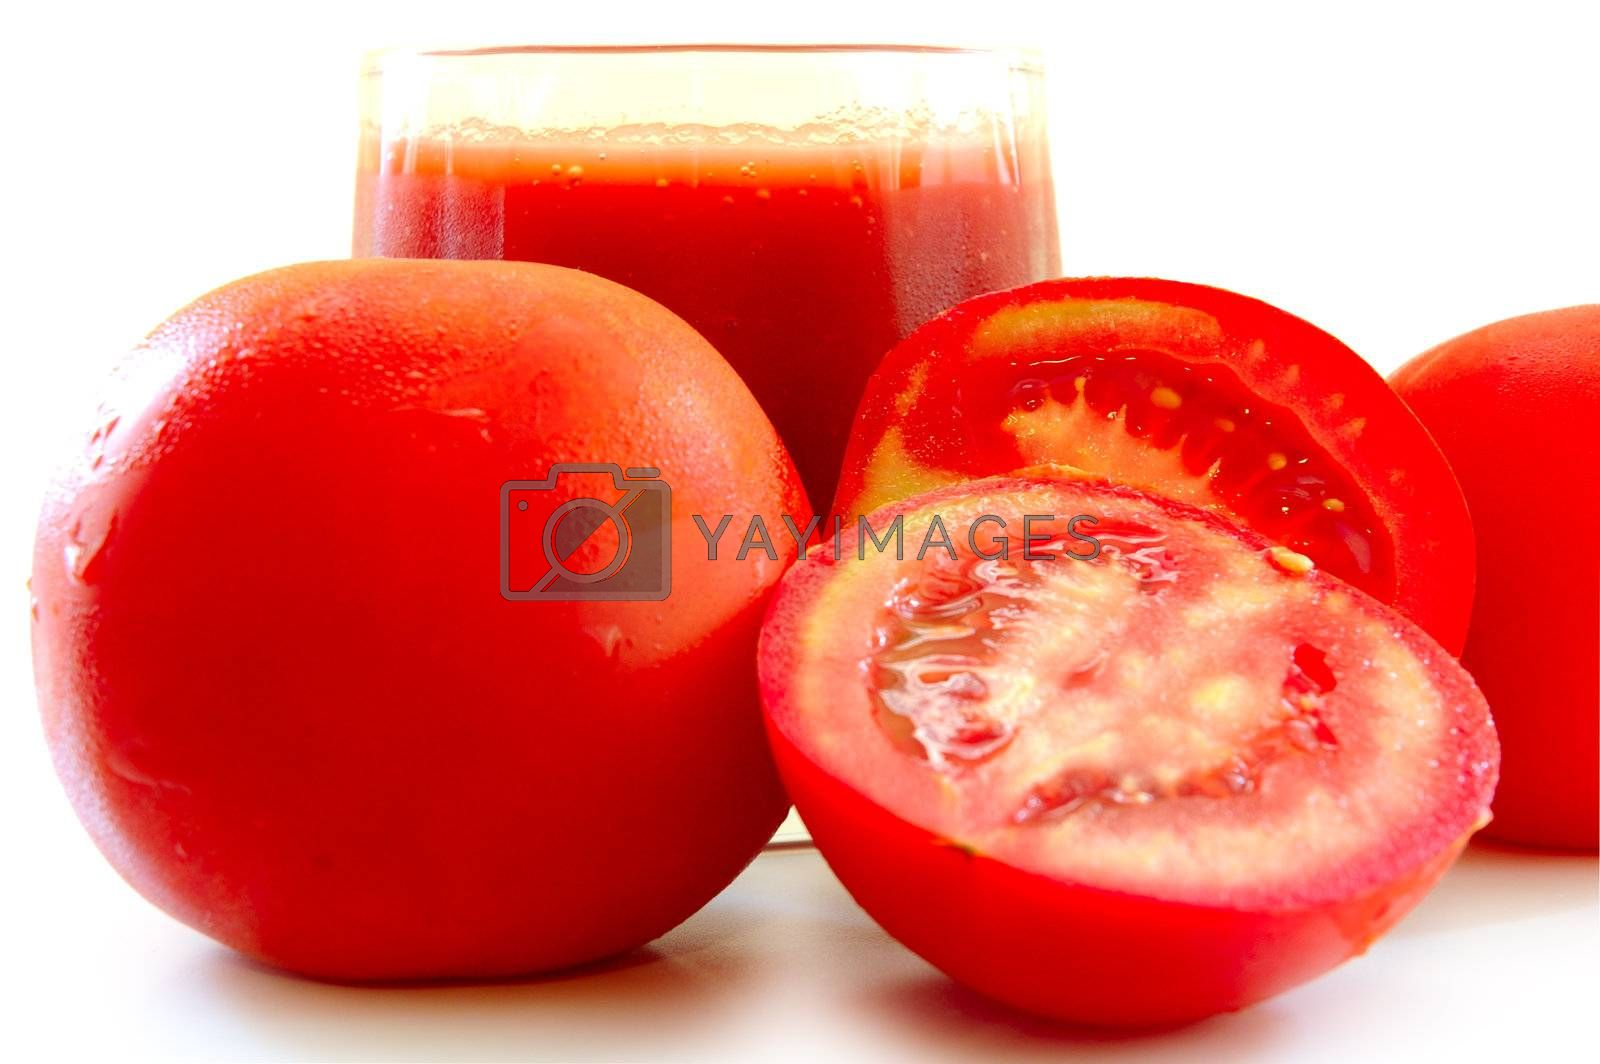 Fresh tomato juice in glass and tomatoes. by alexpurs